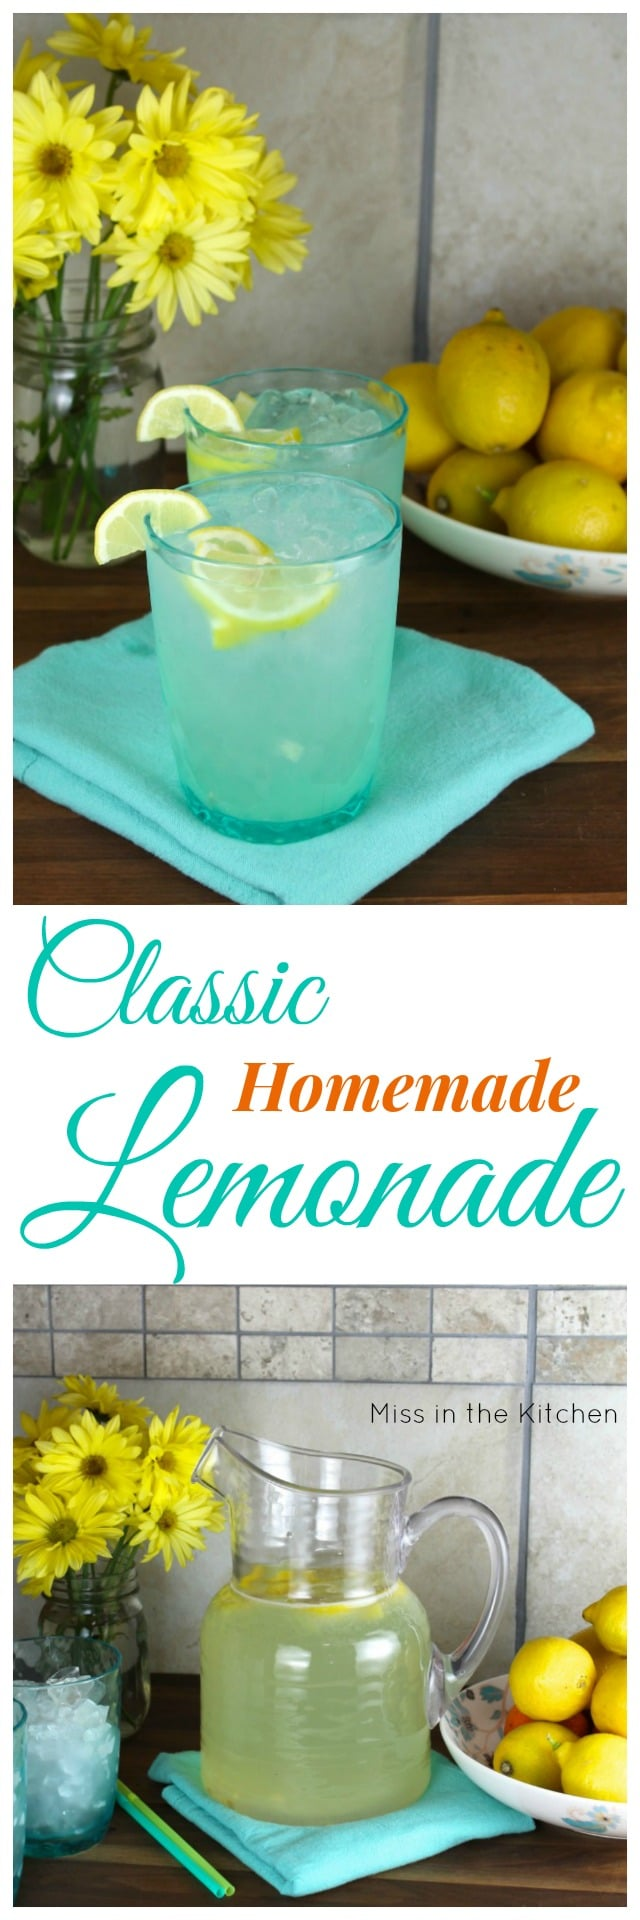 Recipe for Classic Homemade Lemonade with Wayfair #SpringInspiration #ad